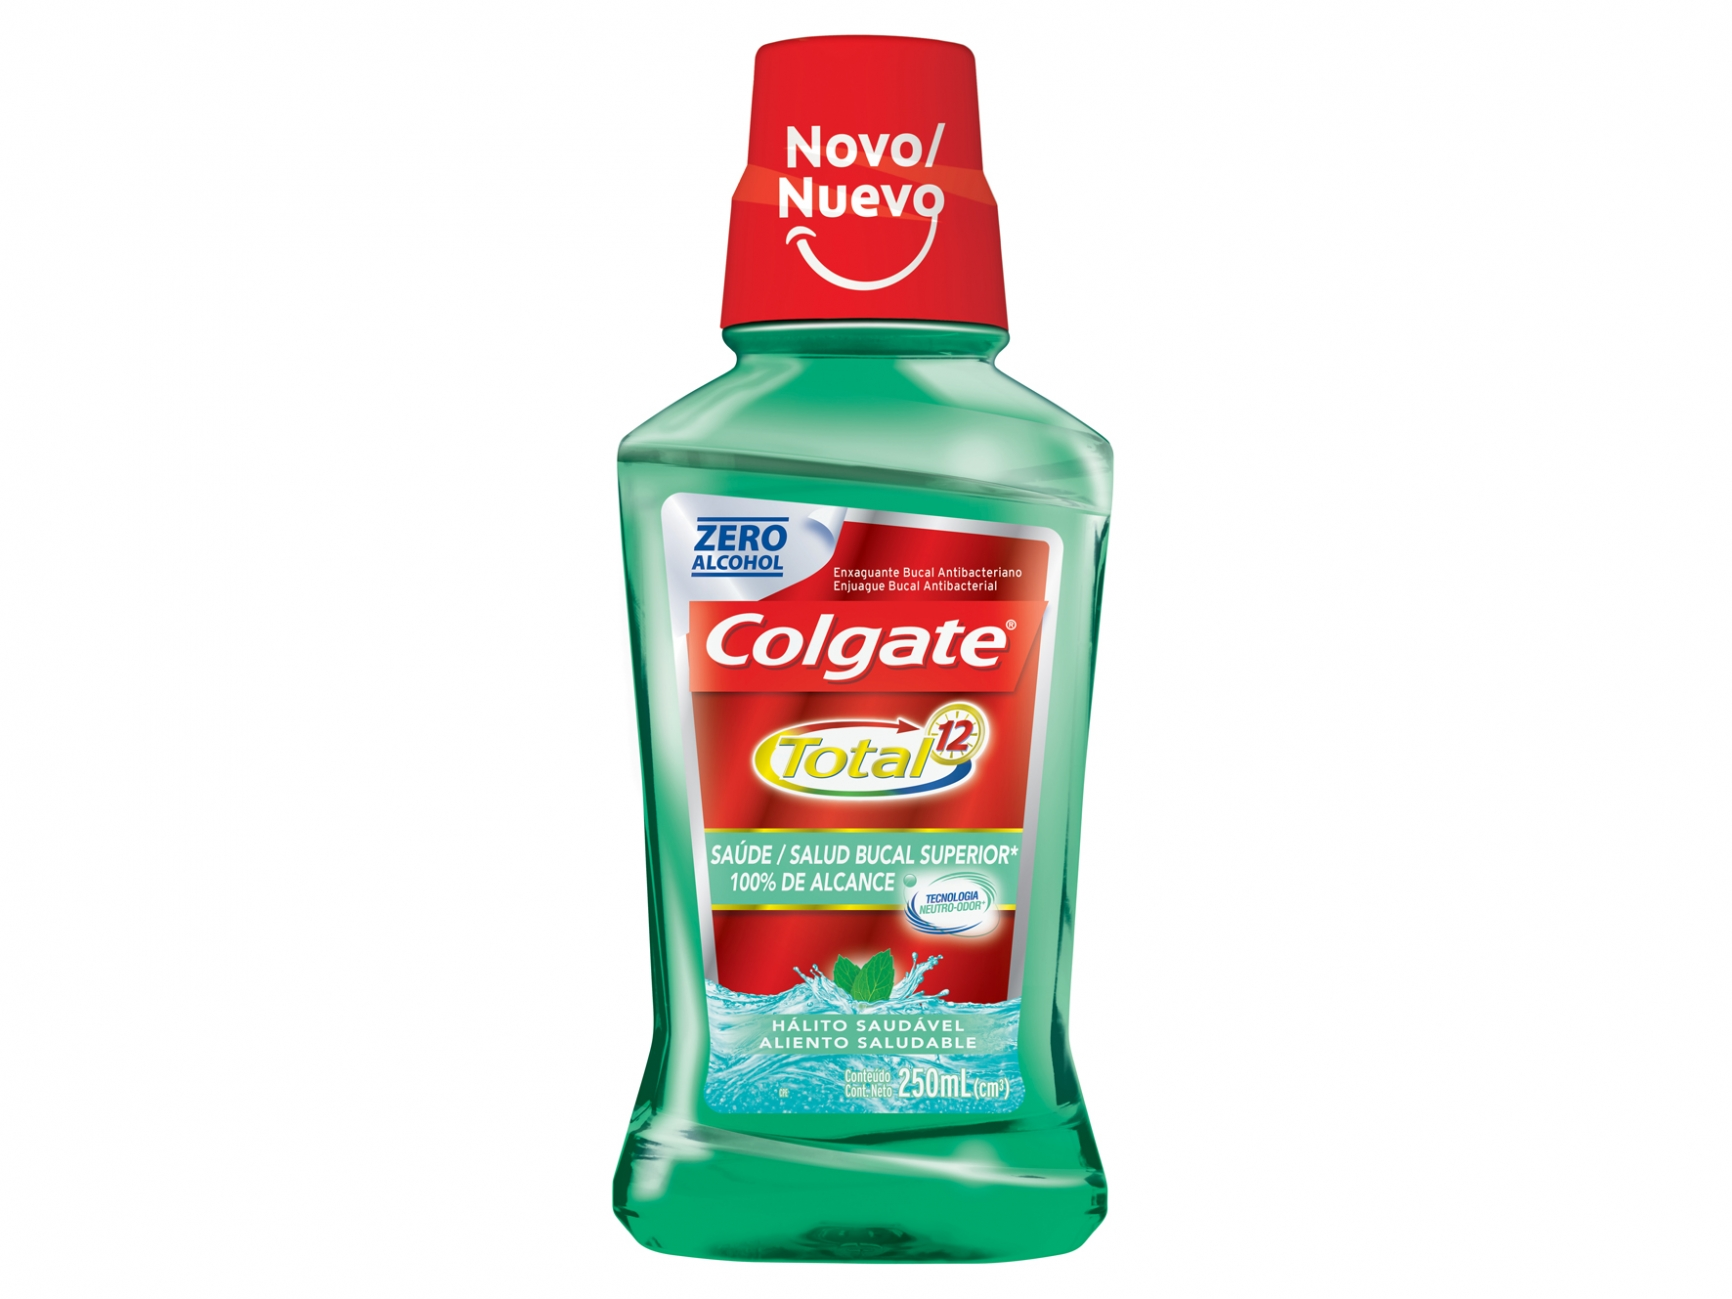 Antisséptico Colgate Total 12 250ML Breath Health